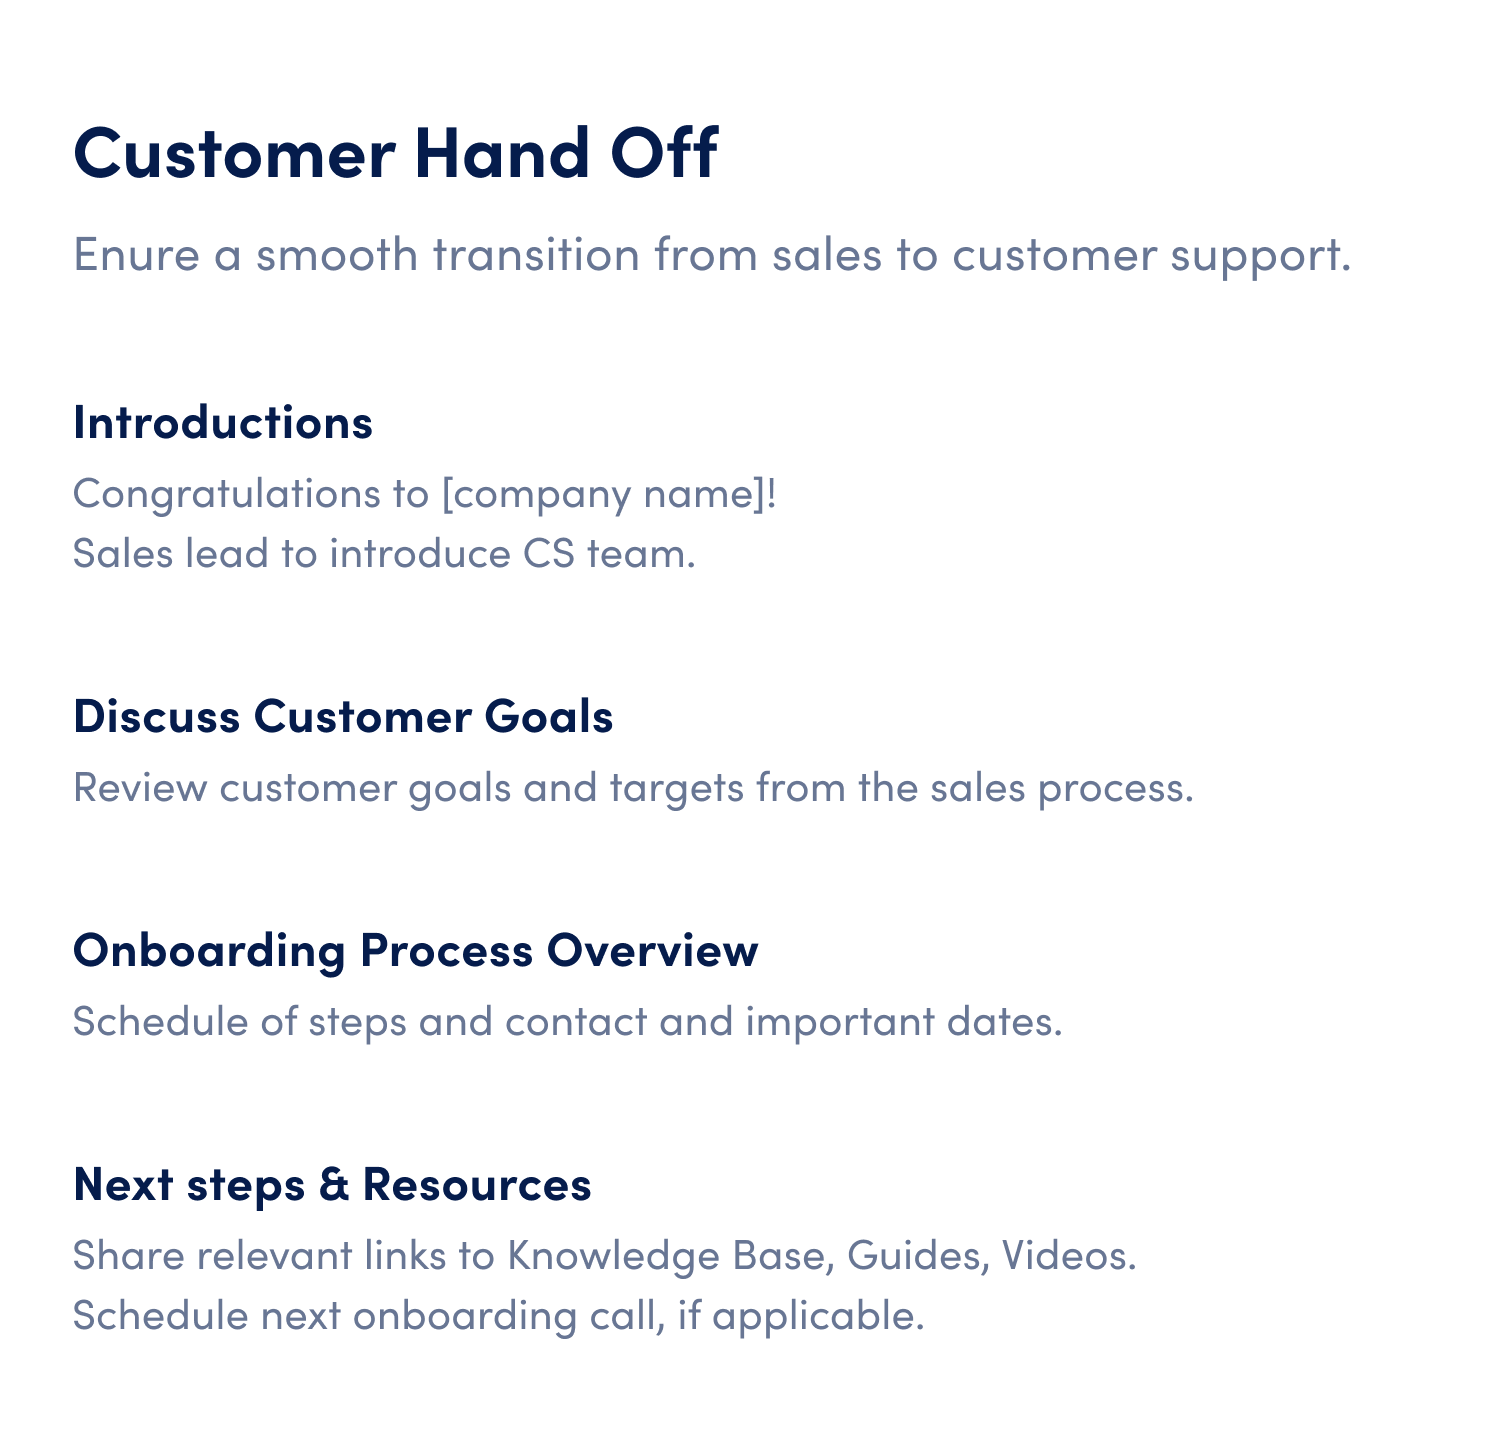 customer hand off meeting agenda template